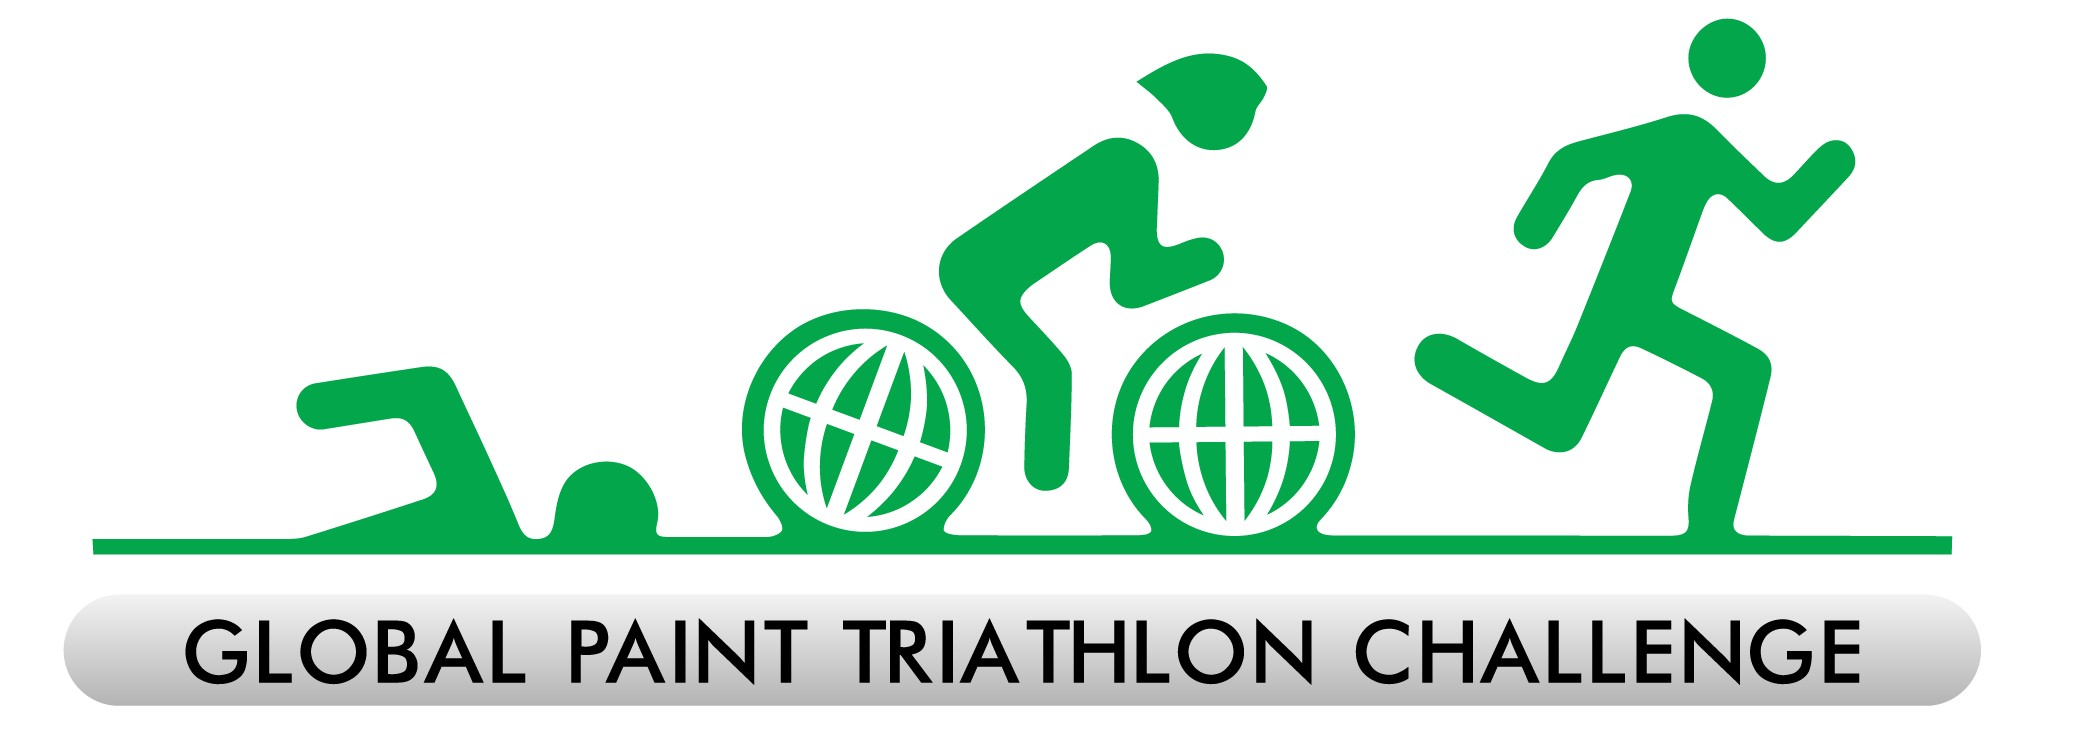 Global Paint Triathlon Challenge_def.png